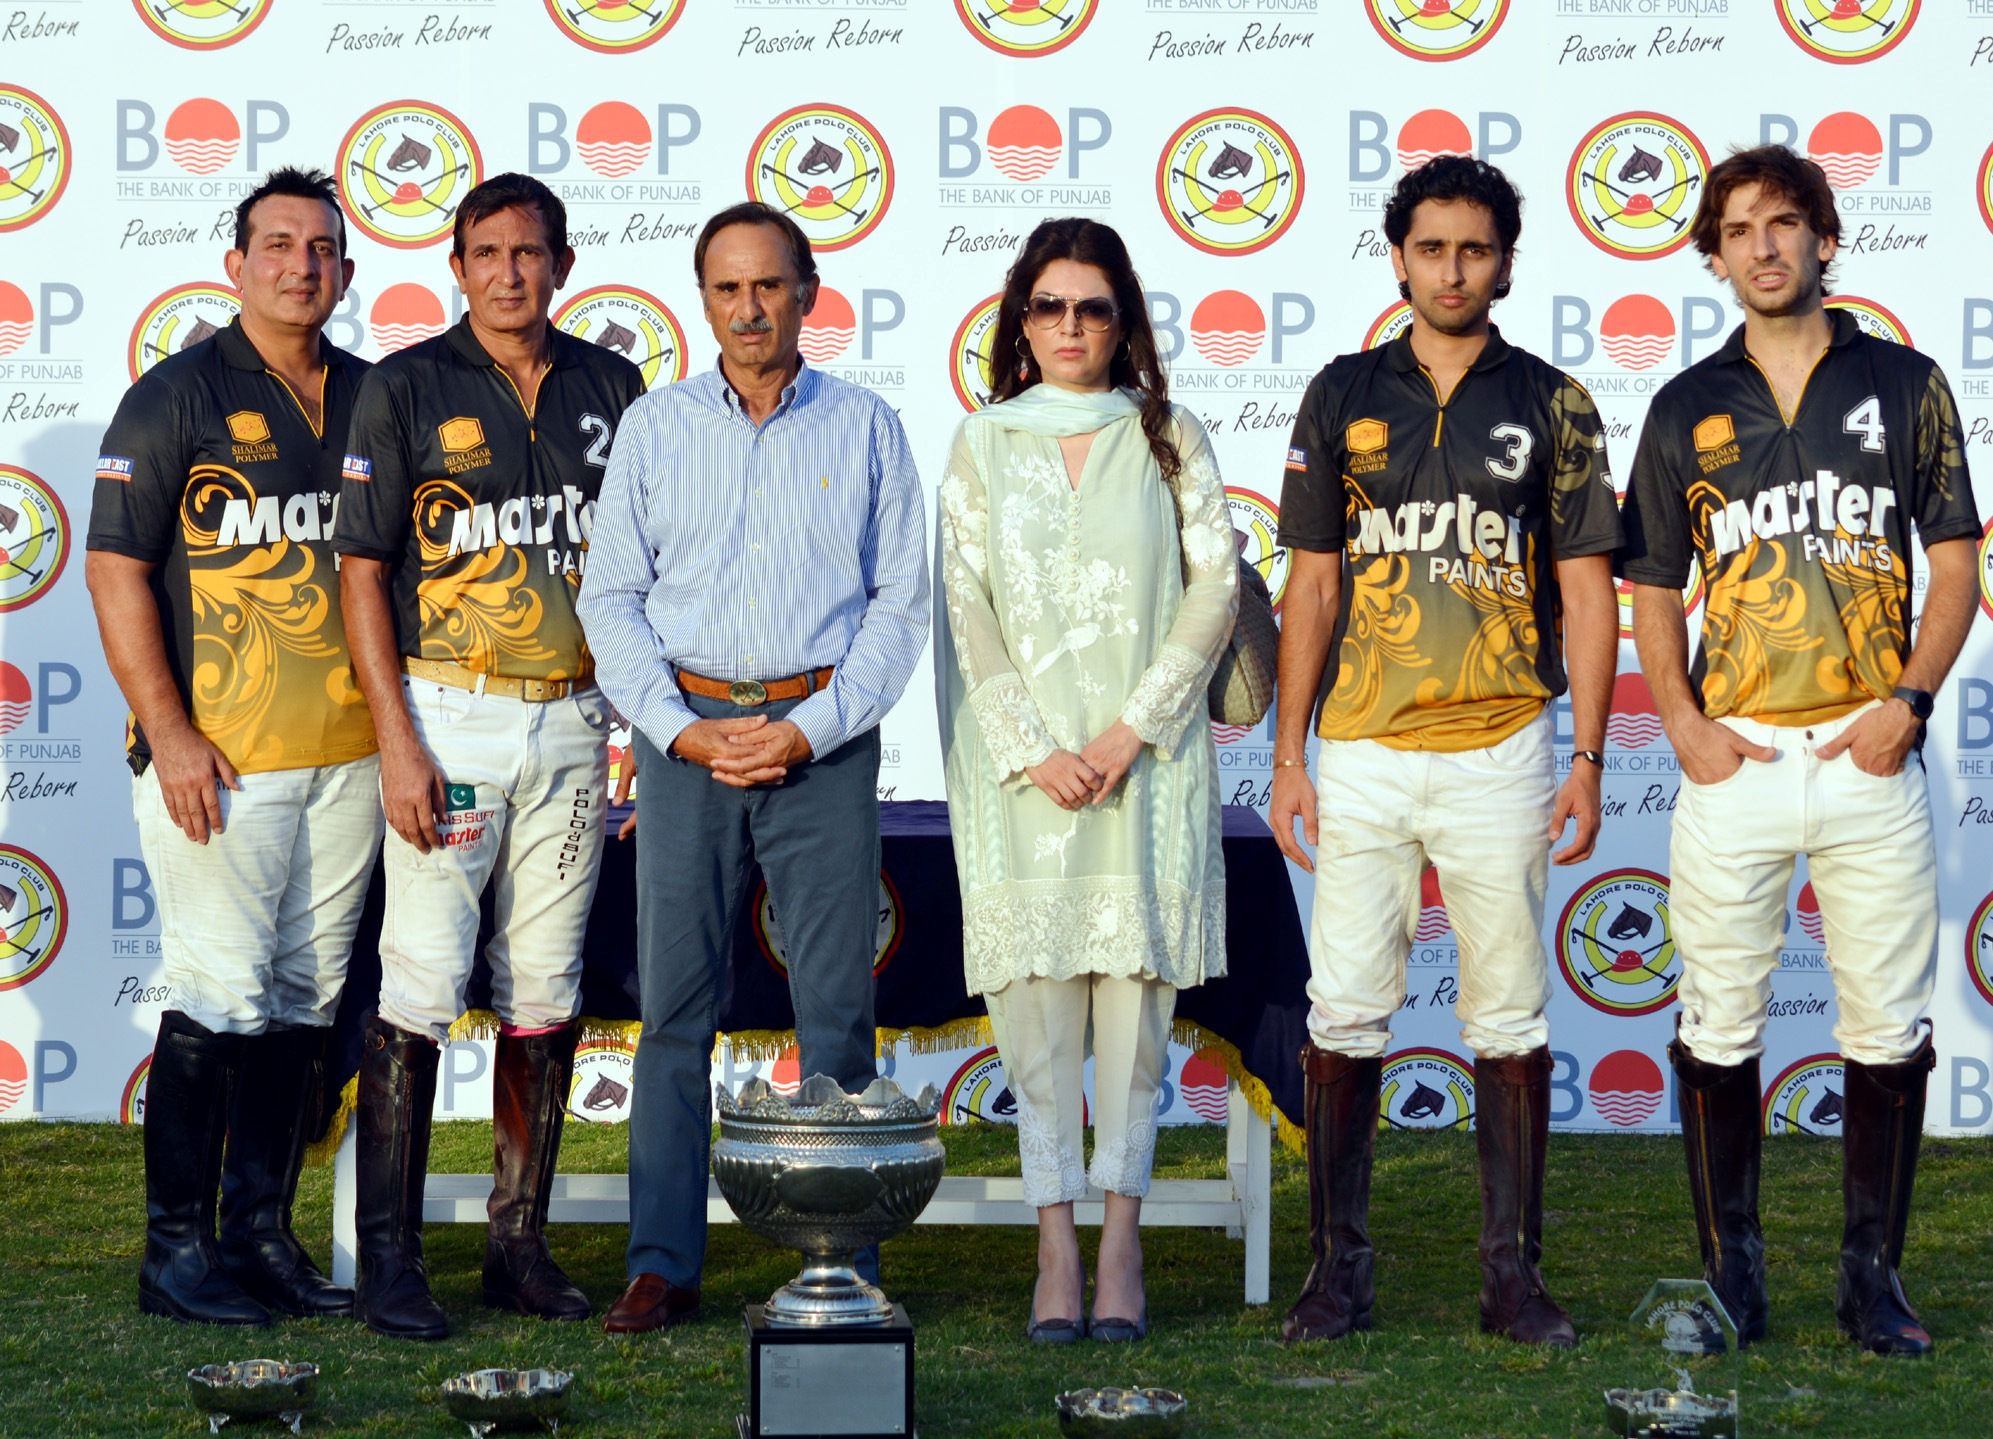 BoP Polo Cup Winning team Master Paints with the trophy